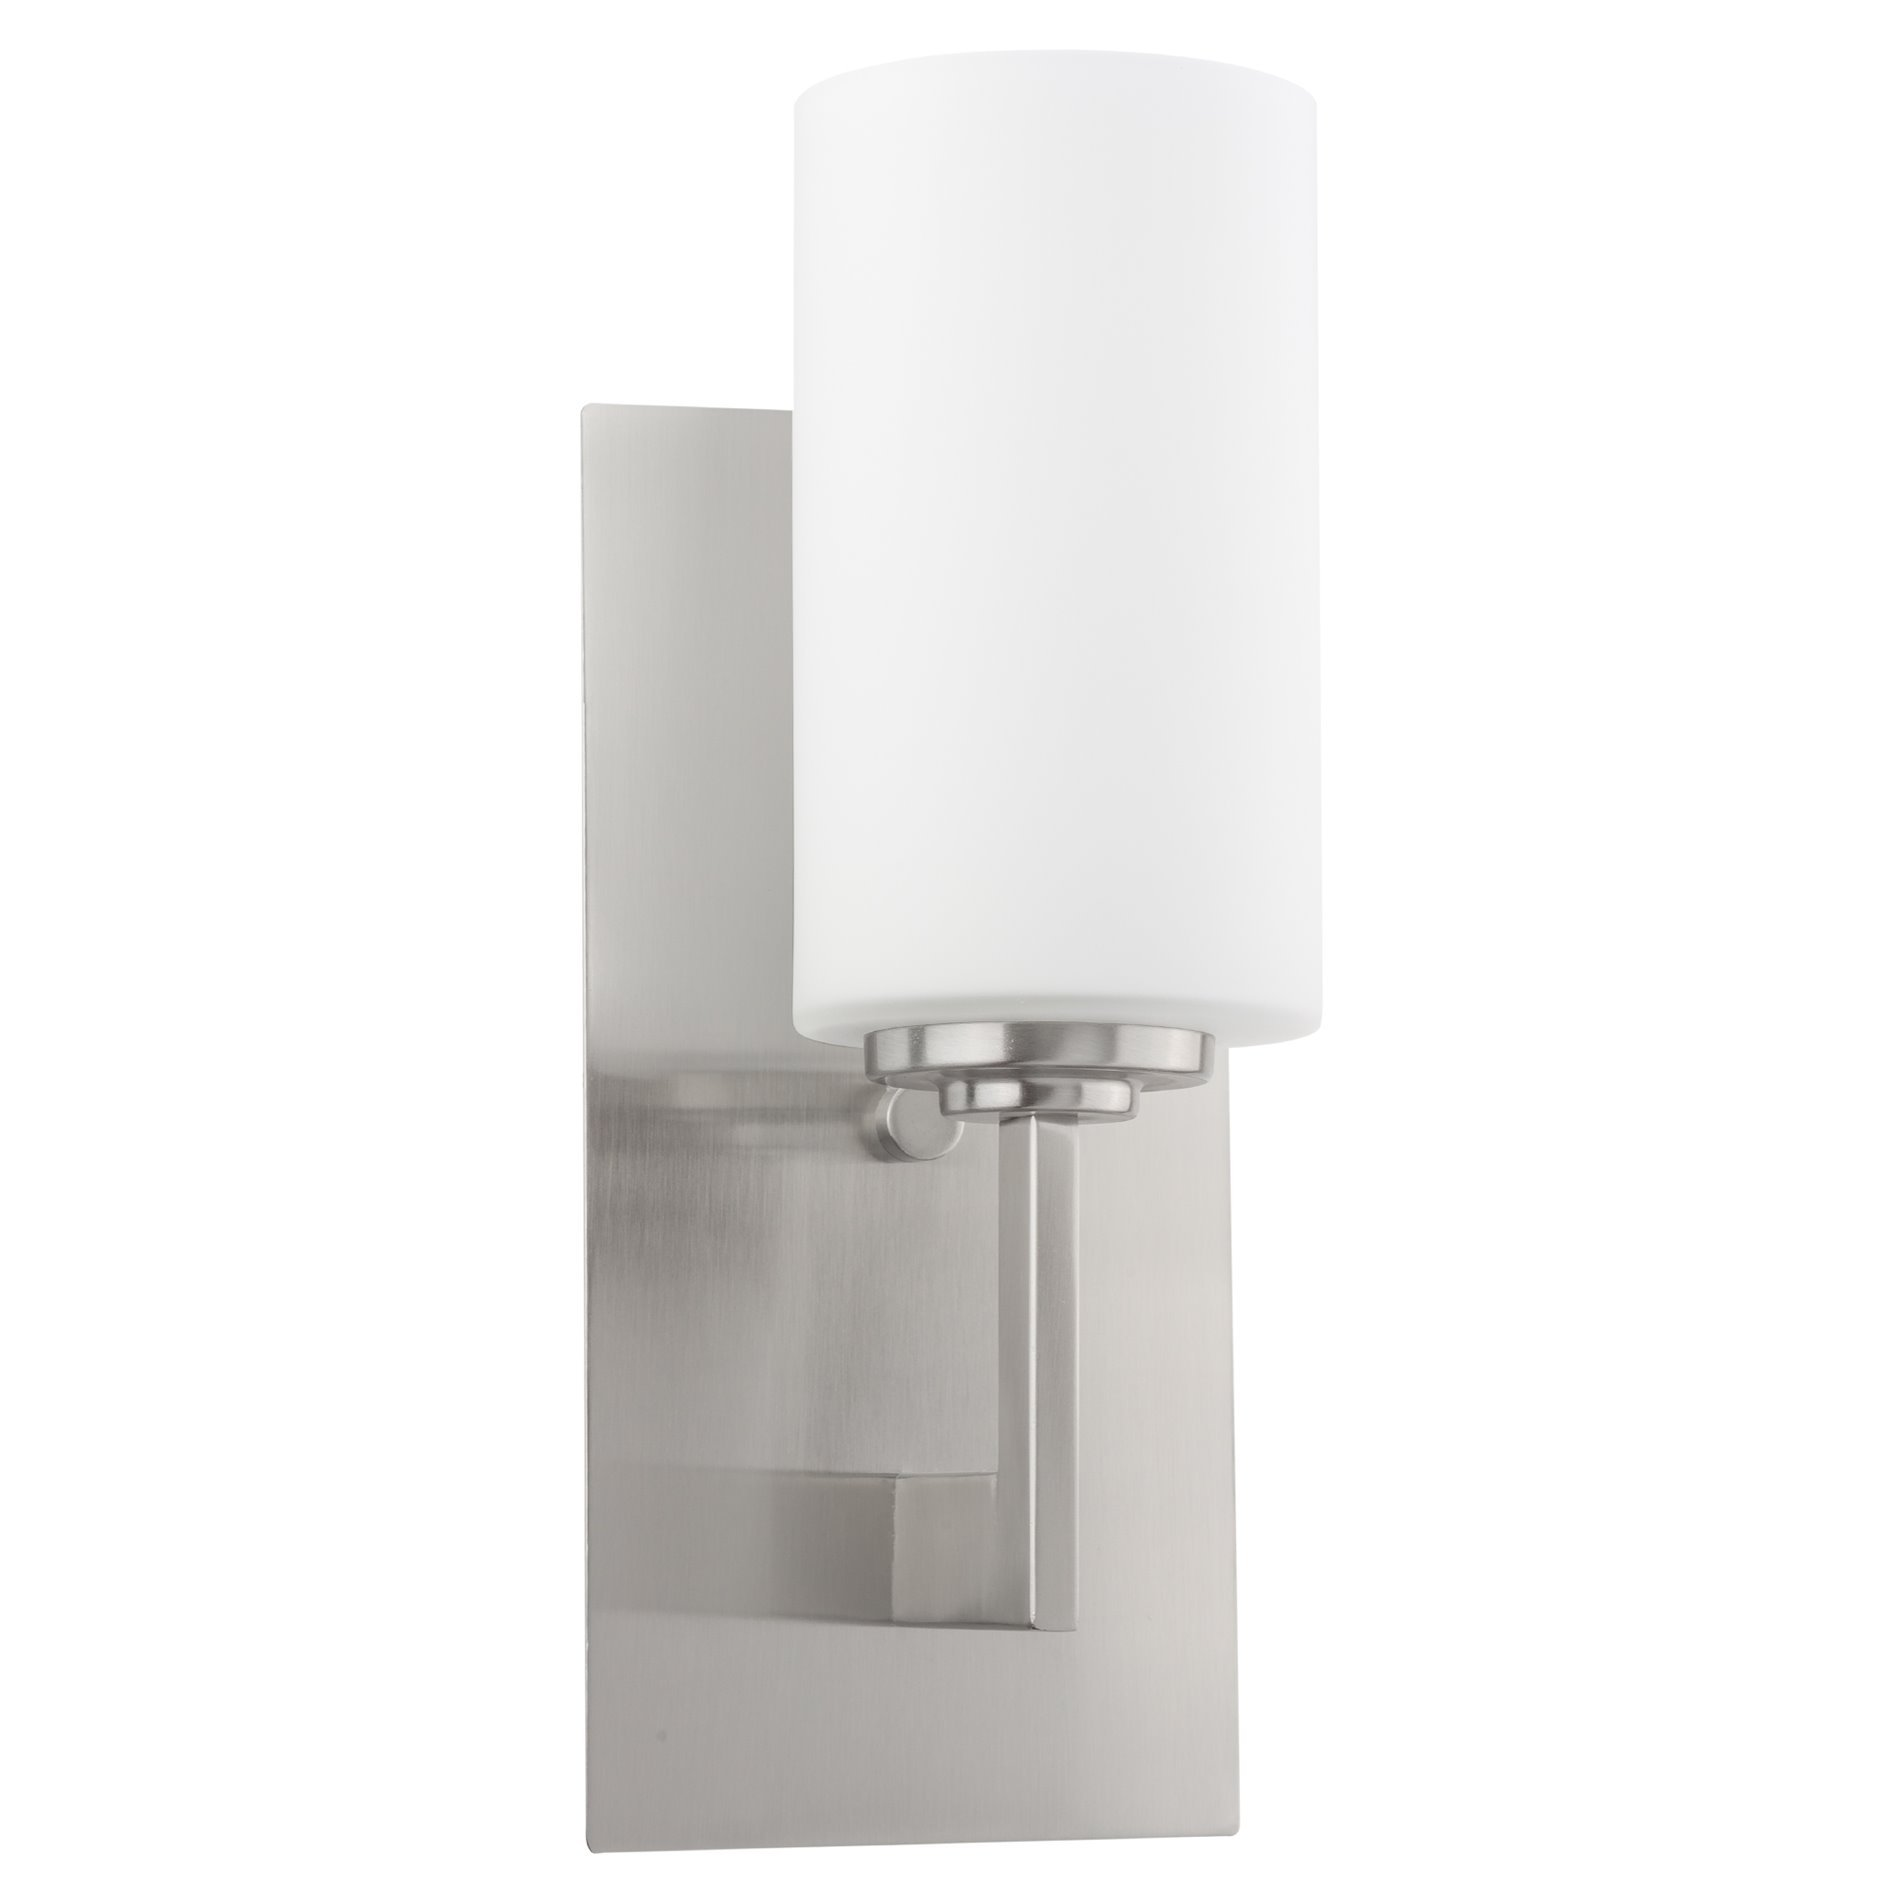 Revel/Kira Home Celene 13'' Contemporary One-Light Bathroom Wall Sconce/Wall Light Vanity + Frosted Glass Shade, Brushed Nickel Finish